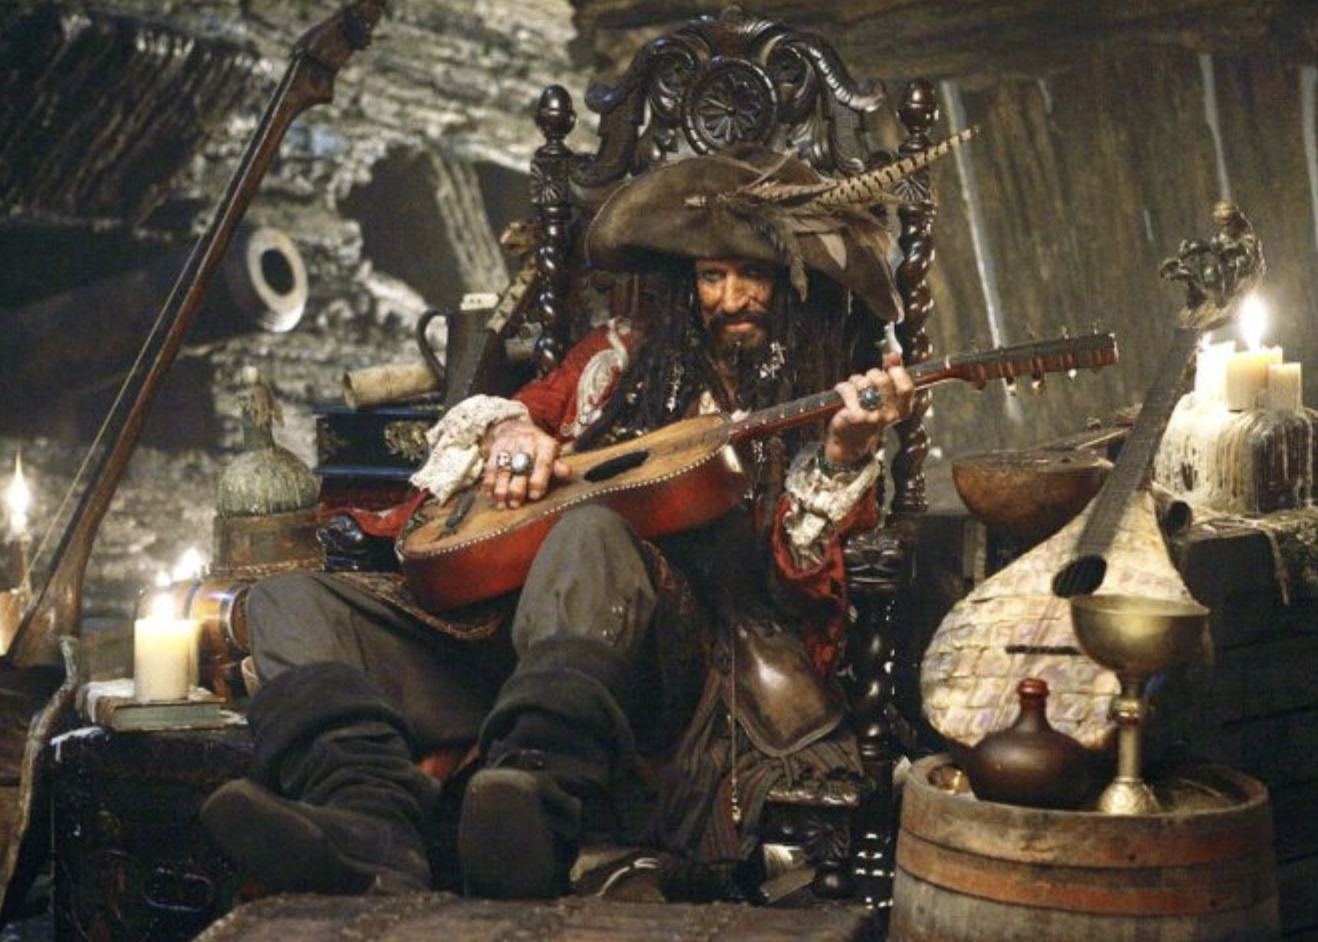 Keith Richards in pirate's garb strumming a guitar